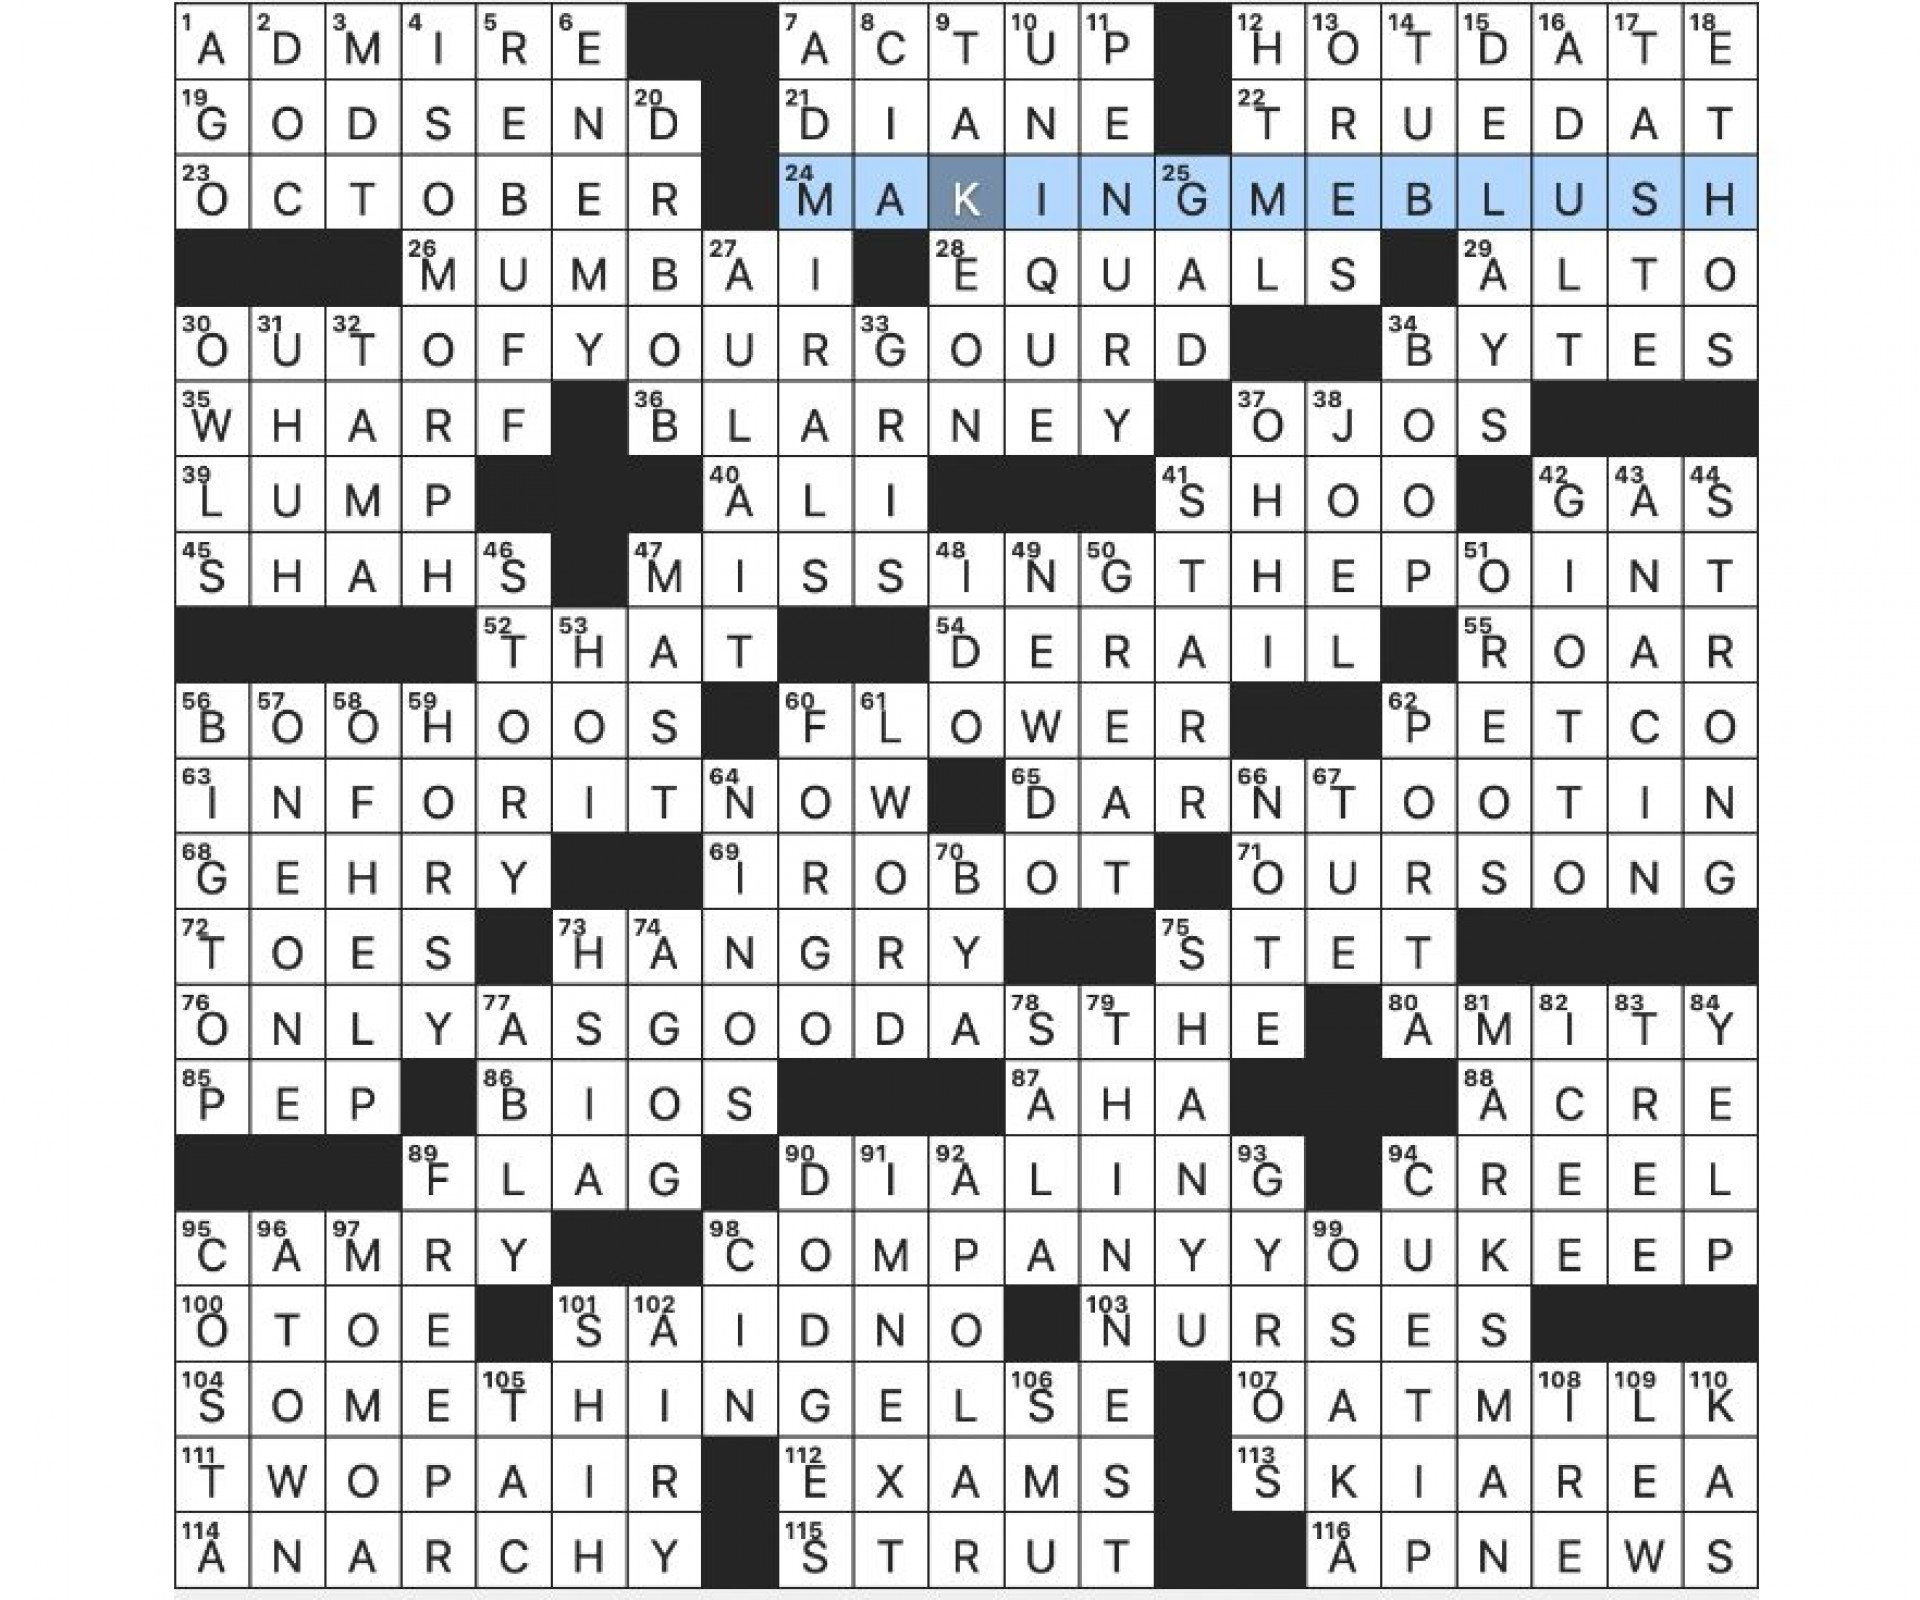 004 Archaicawful Rex Parker Doe Nytime Crossword Inspiration  The Nyt It All Add Up May 24 2020 Chore Galore1920